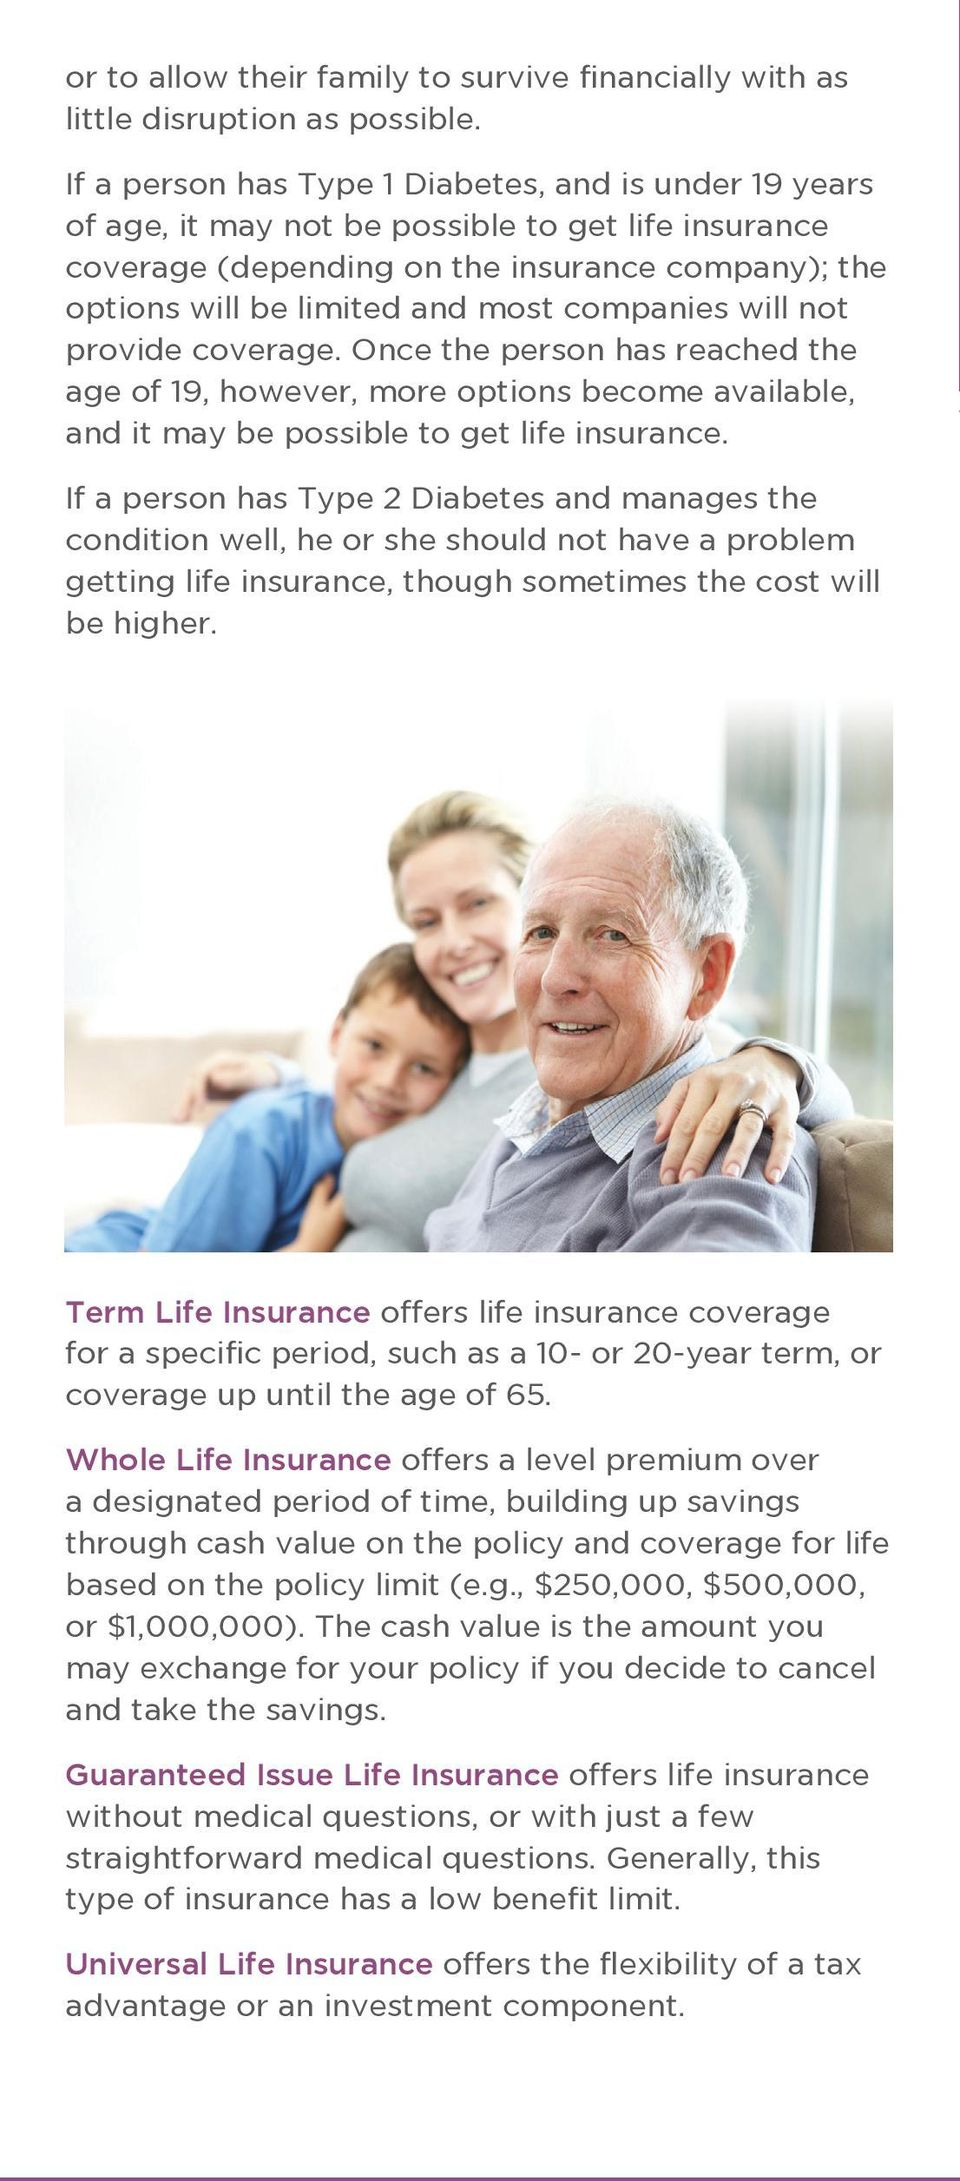 companies will not provide coverage. Once the person has reached the age of 19, however, more options become available, and it may be possible to get life insurance.